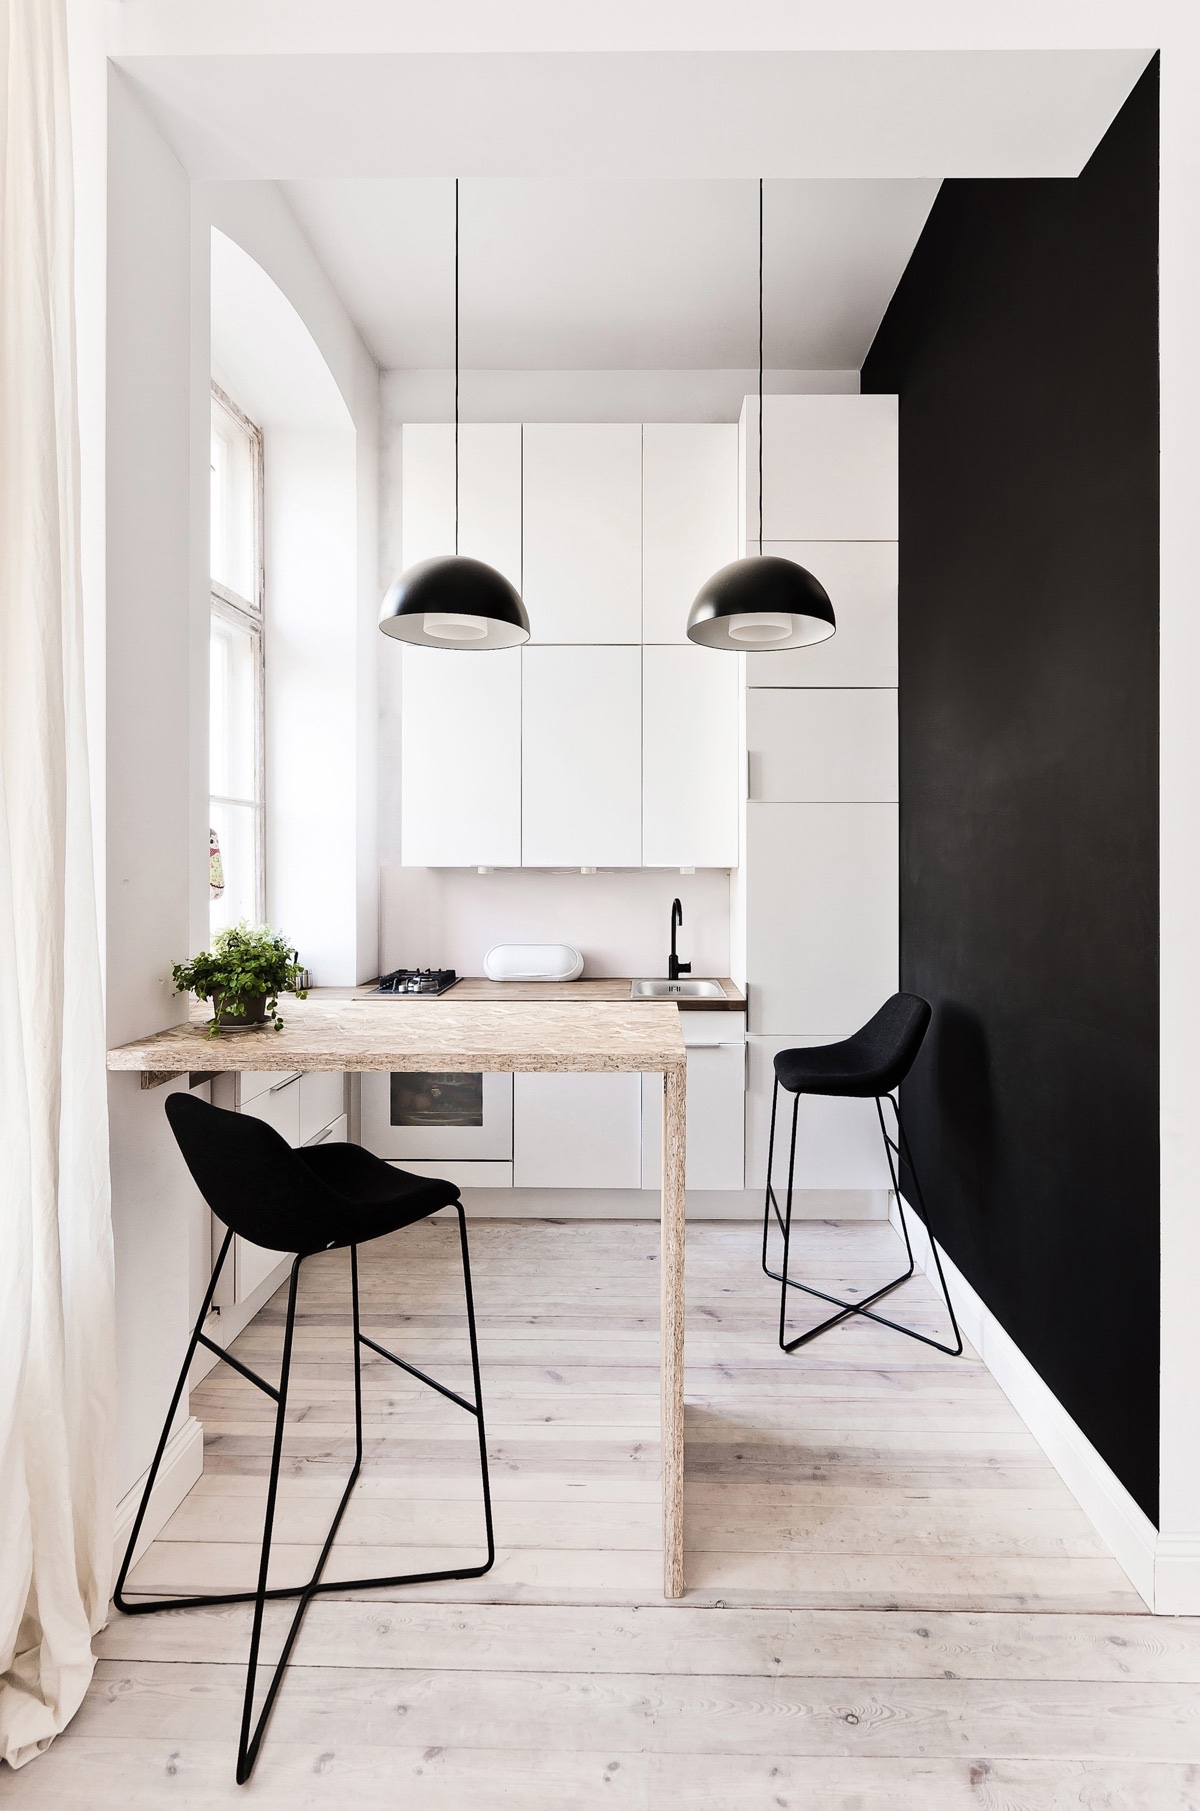 40 Minimalist Kitchens to Get Super Sleek Inspiration images 25